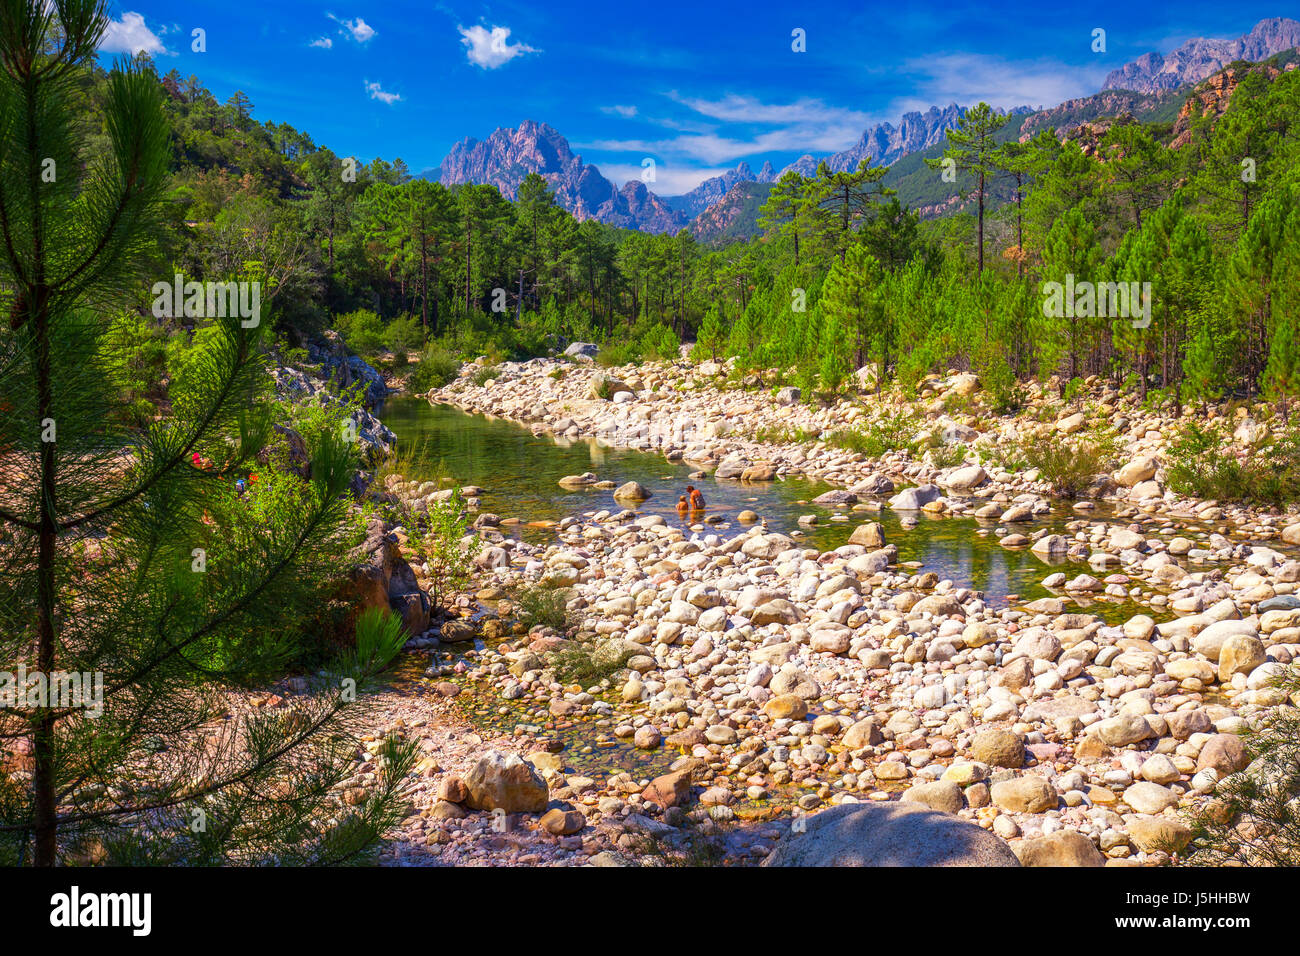 Pine trees in Col de Bavella mountains near Zonza town, Corsica island, France, Europe. - Stock Image